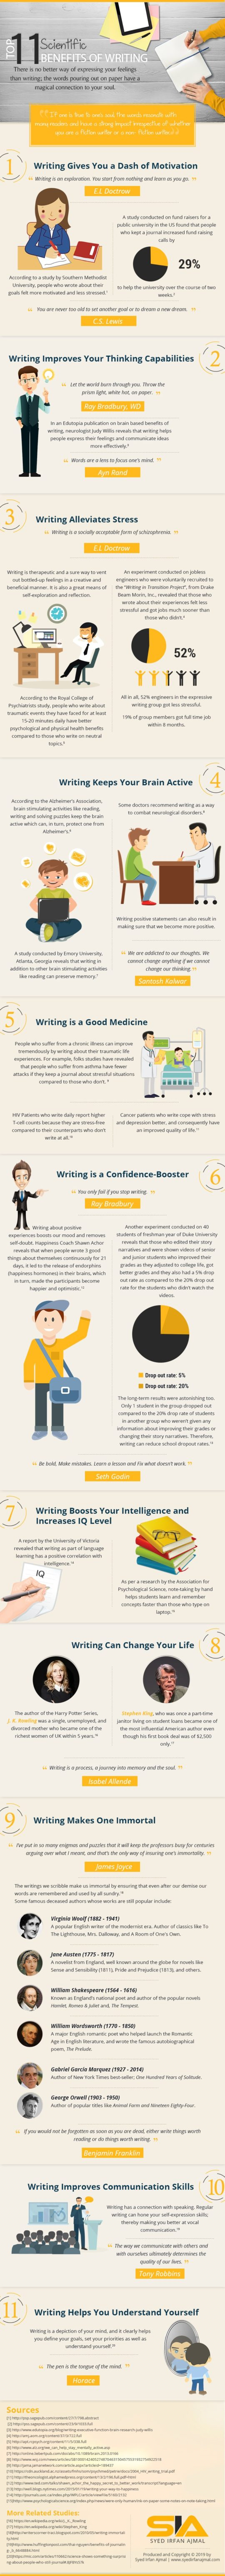 Science backed benefits of writing - full infographic